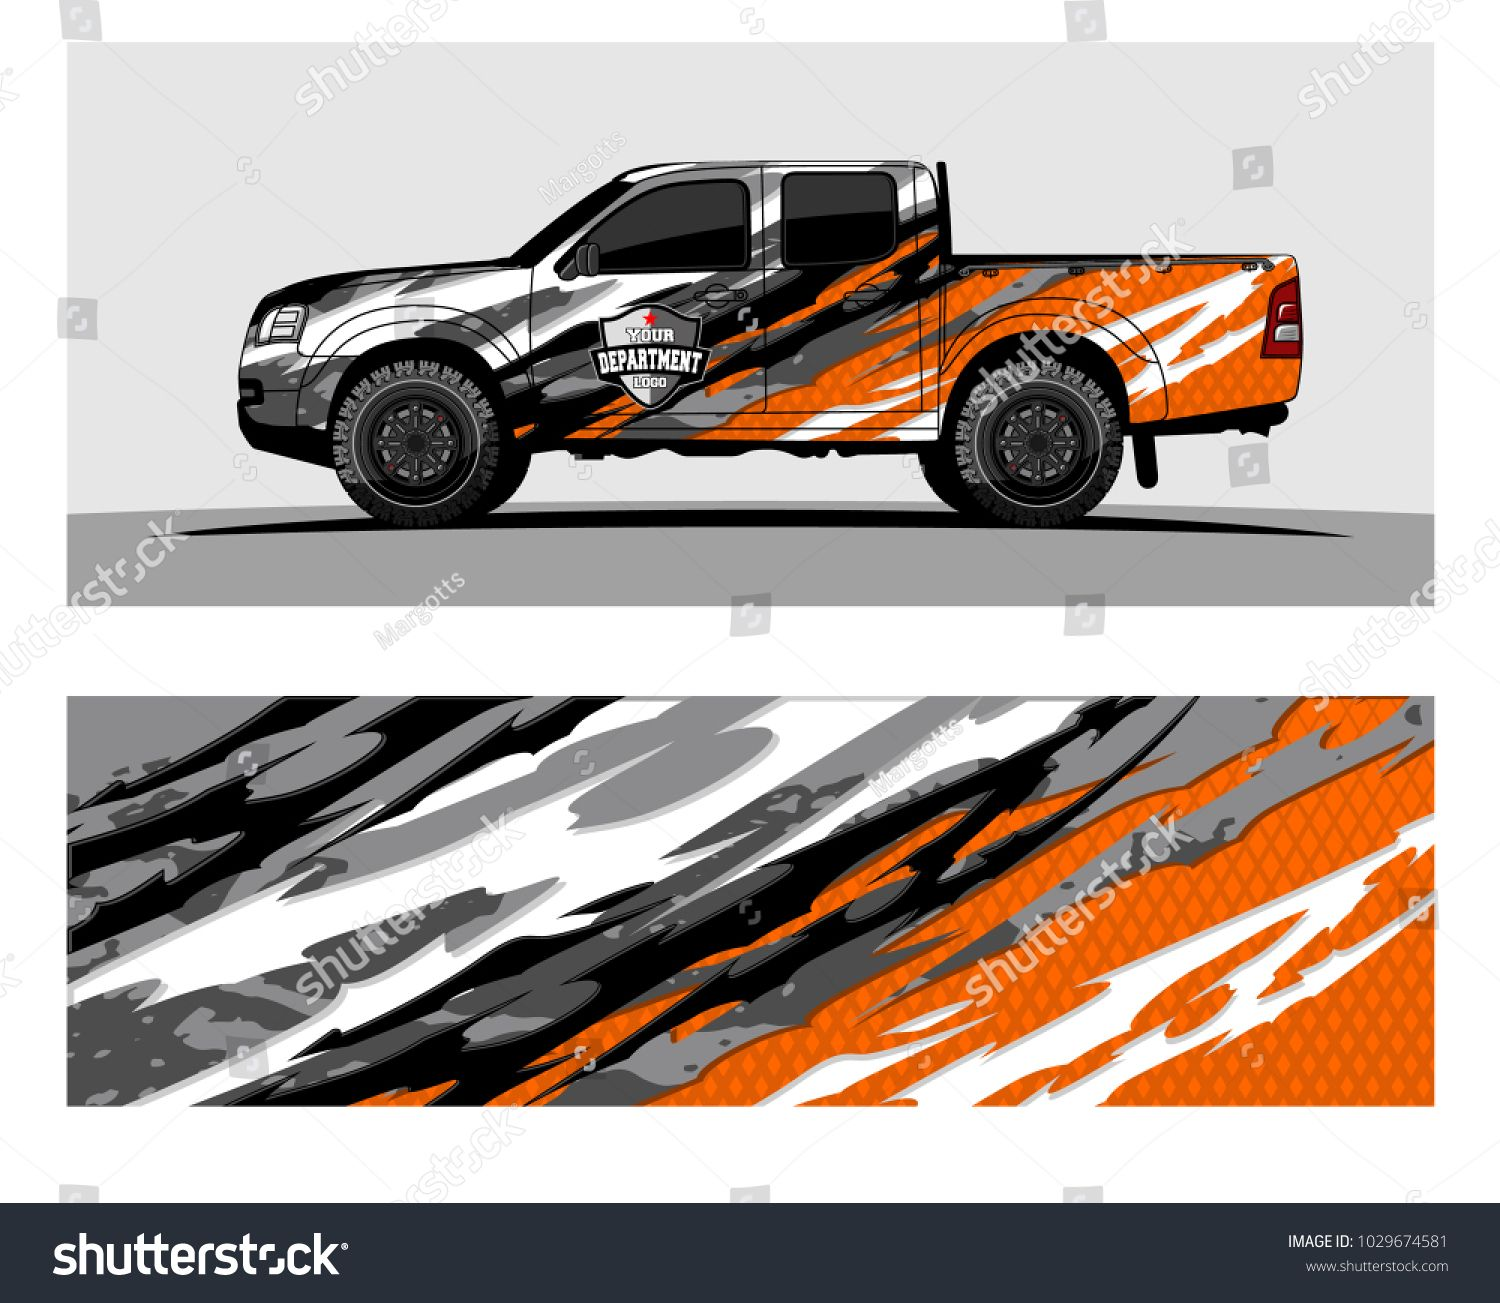 Truckcar and vehicle racing graphic kit background for wrap and vinyl sticker